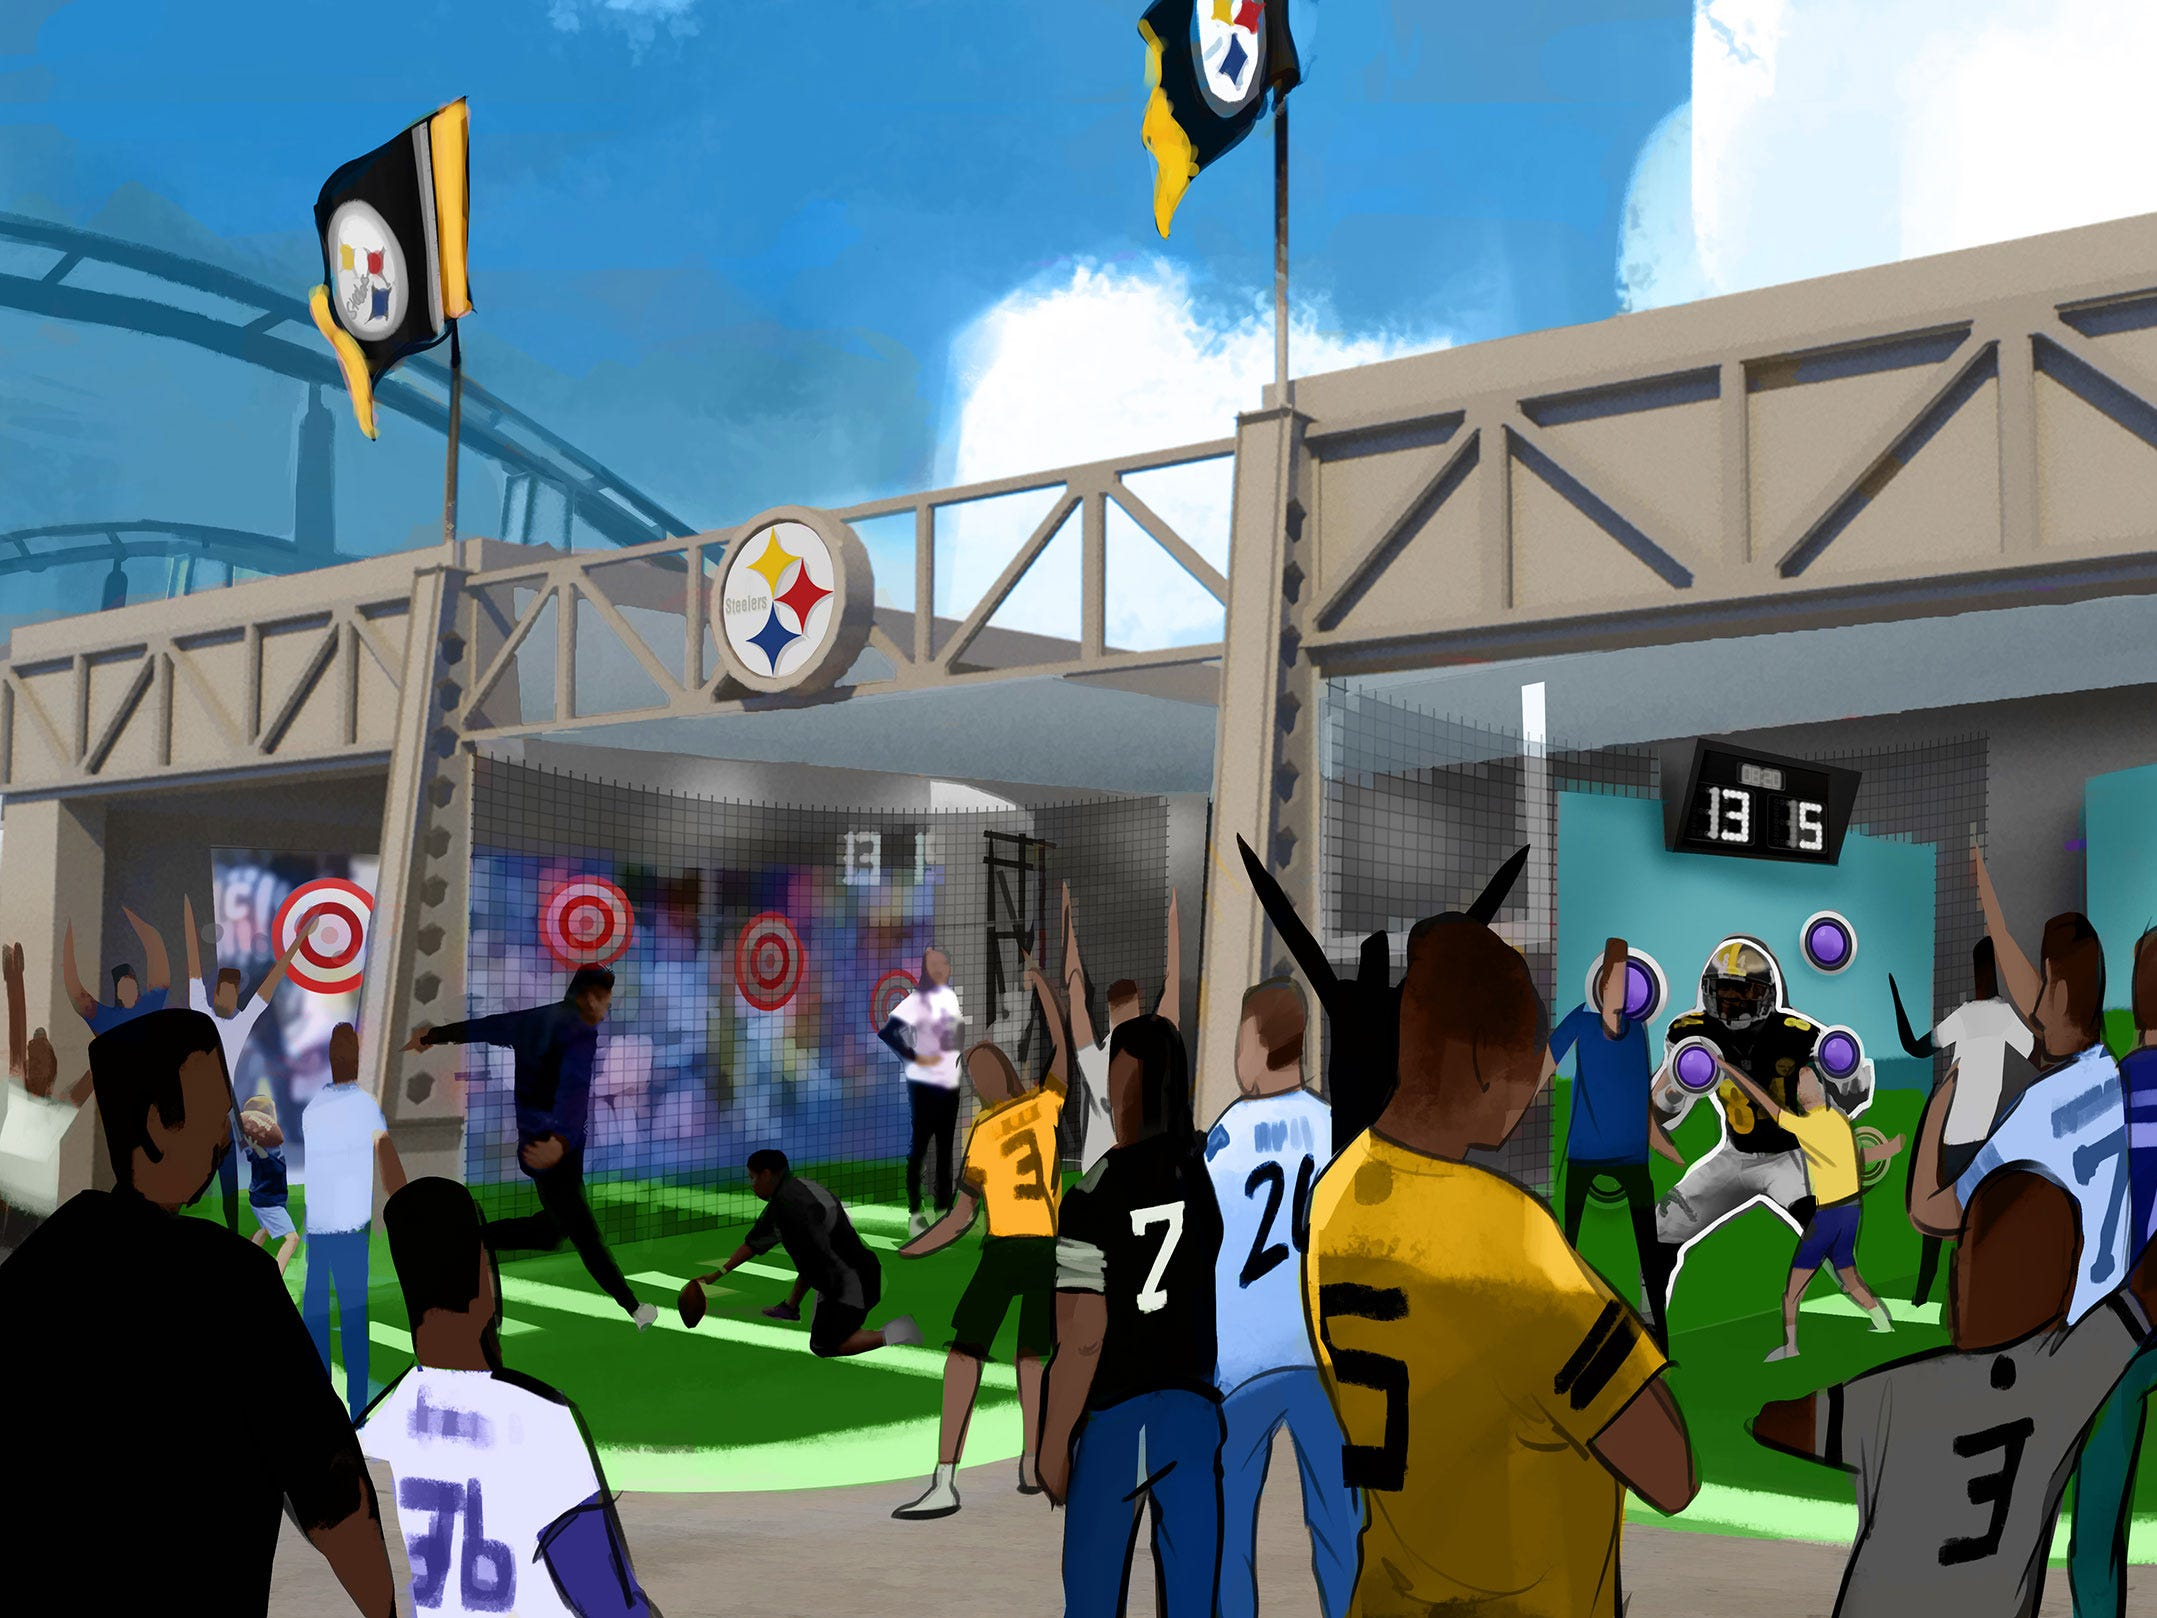 The new land will also include midway games (at least one of which will likely involve tossing a football).